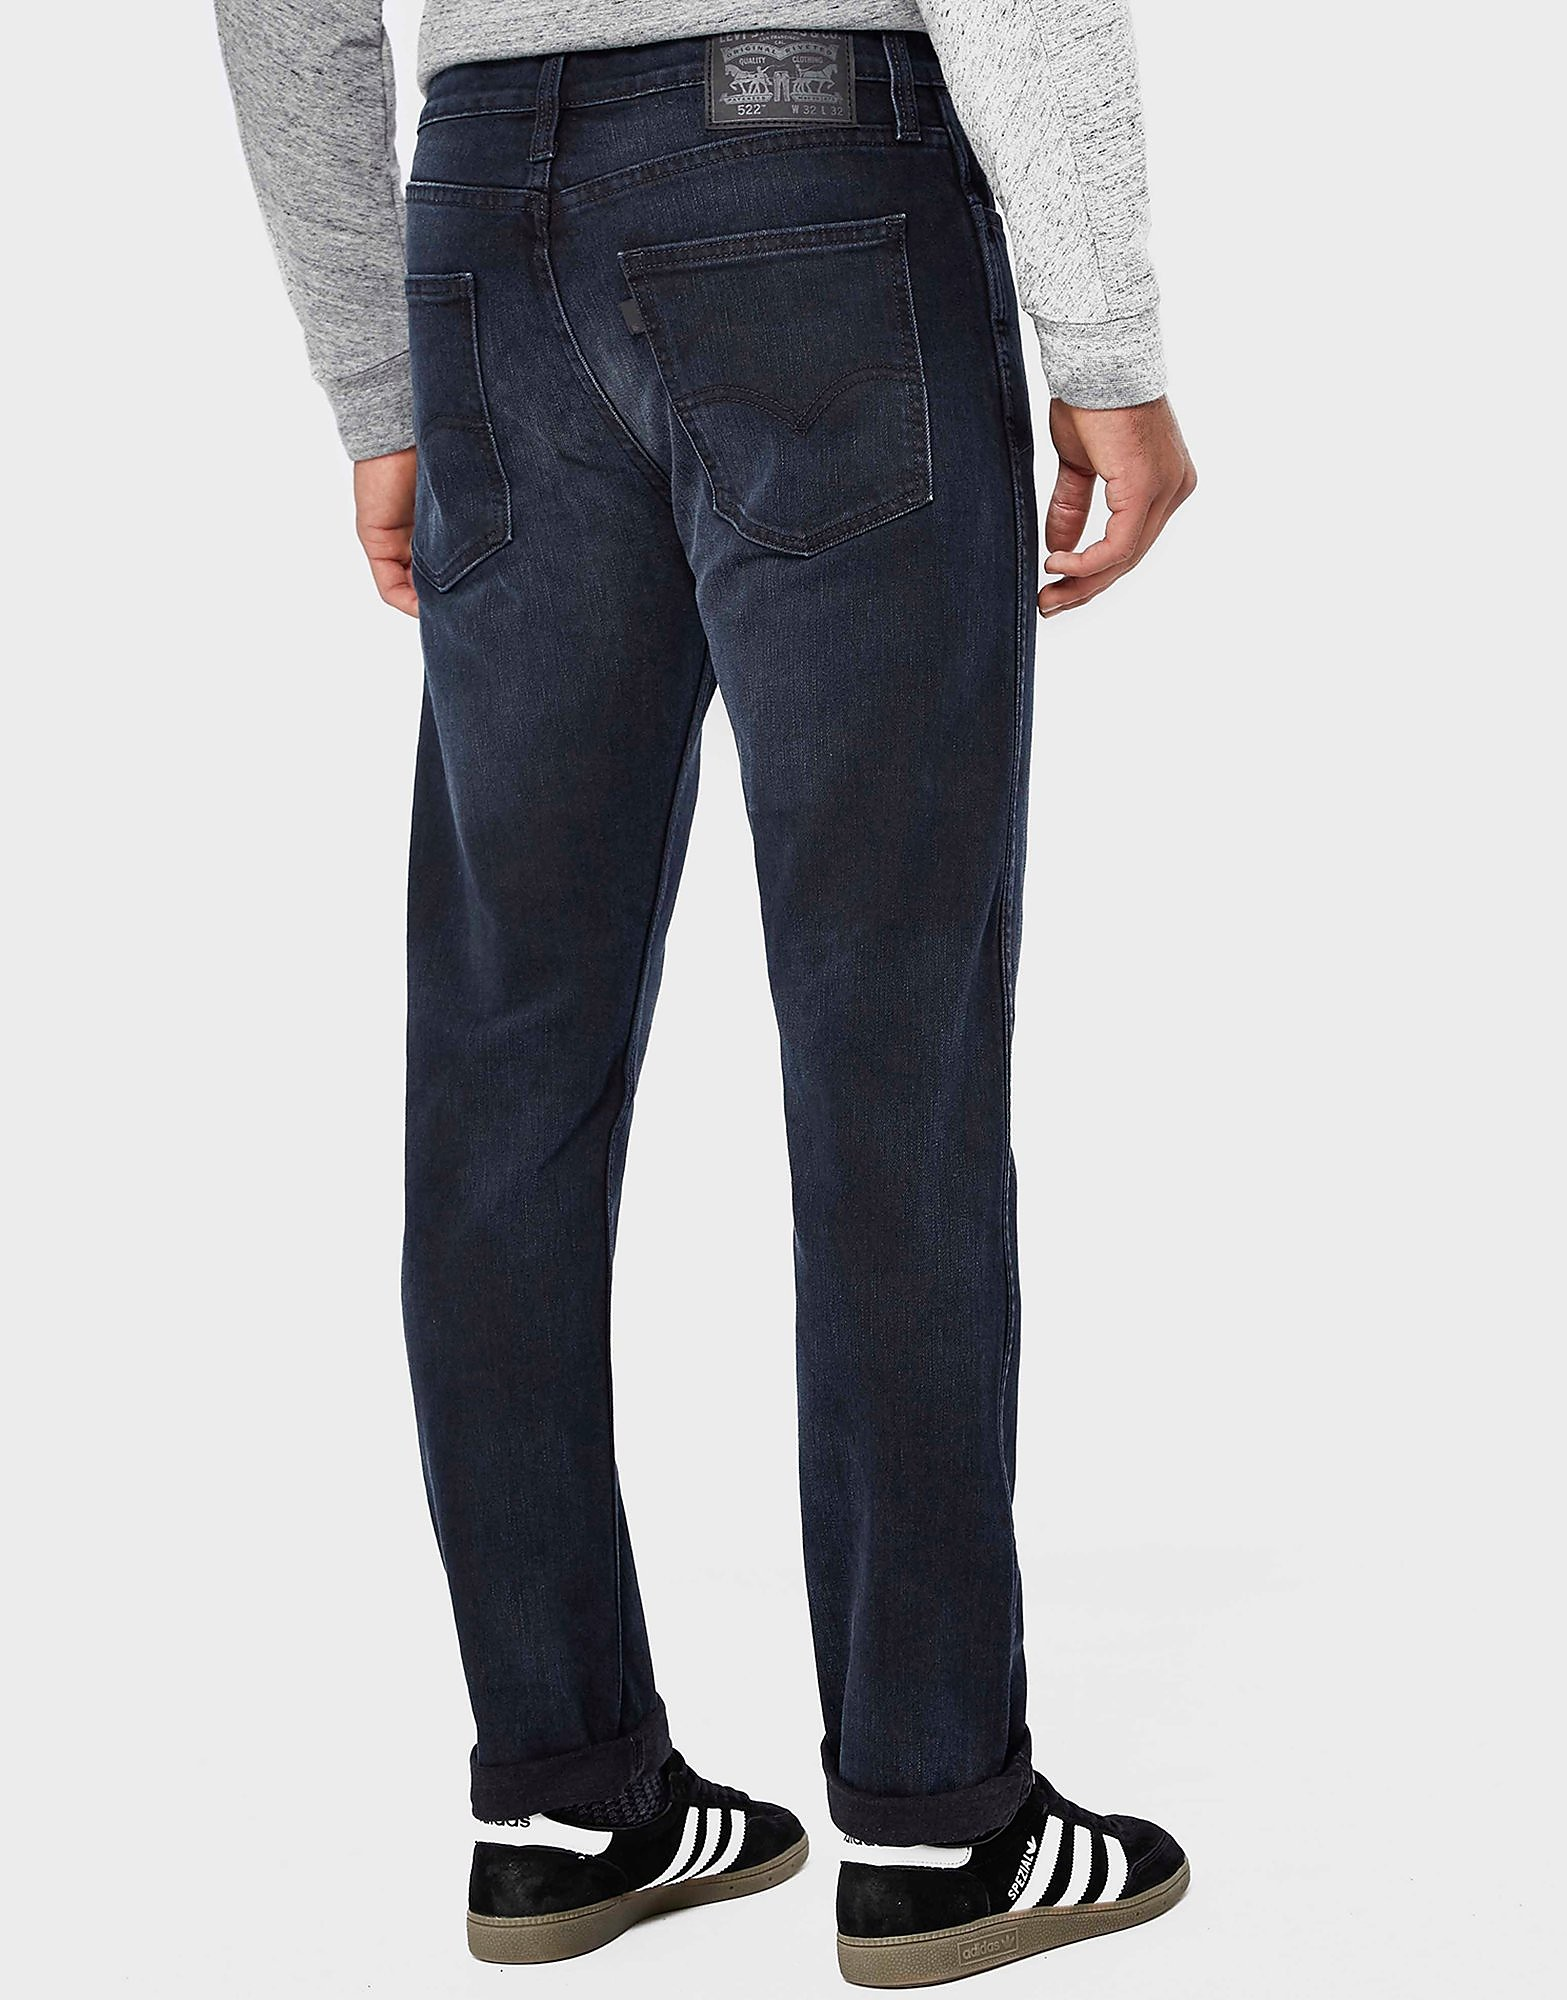 Levis 522 Taper Jeans